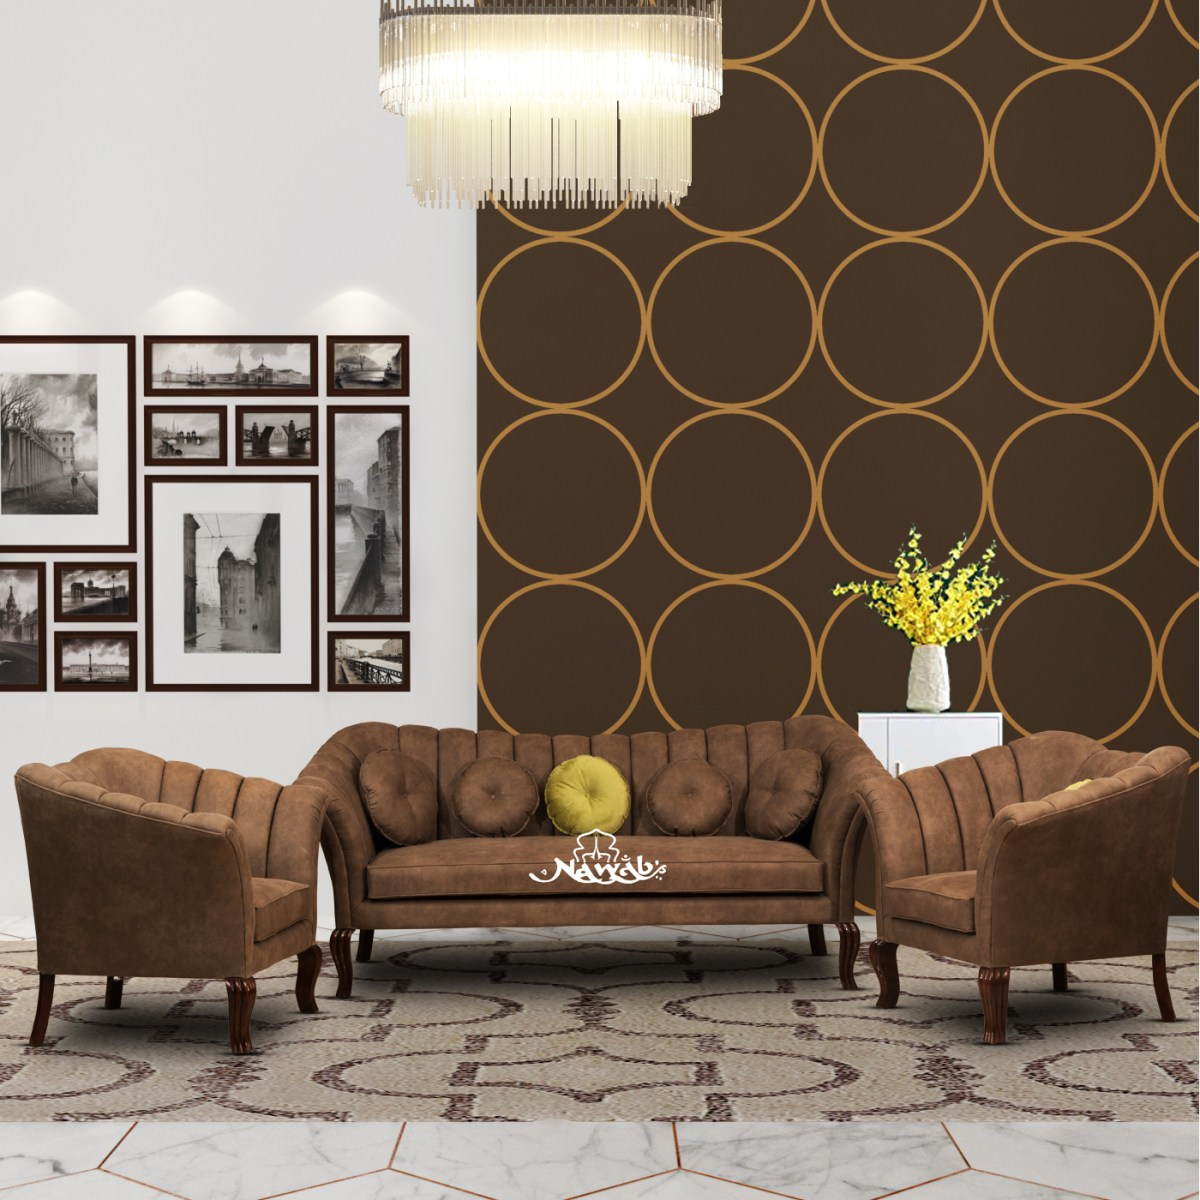 Suede-fabric-wooden-frame-with-foam-padding-teak-wood-legs-background